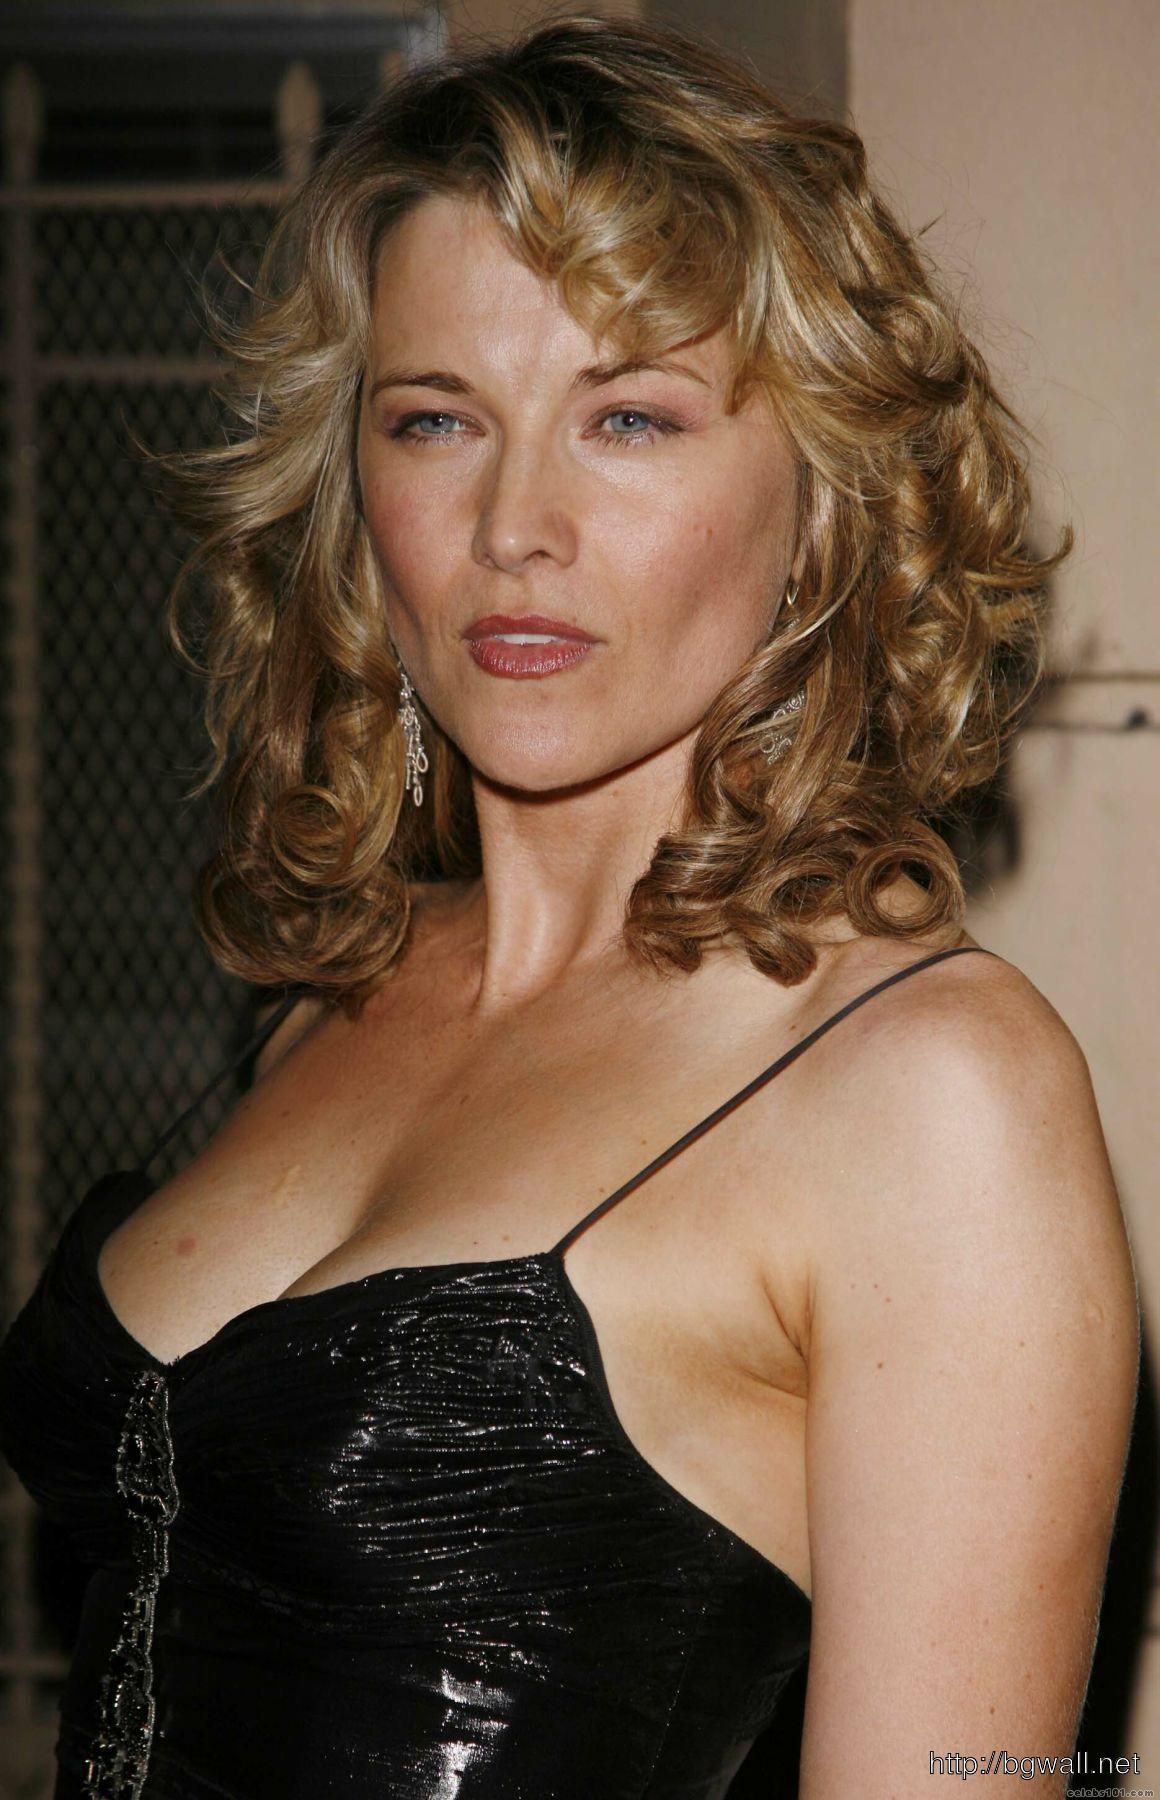 lucy_lawless.jpg